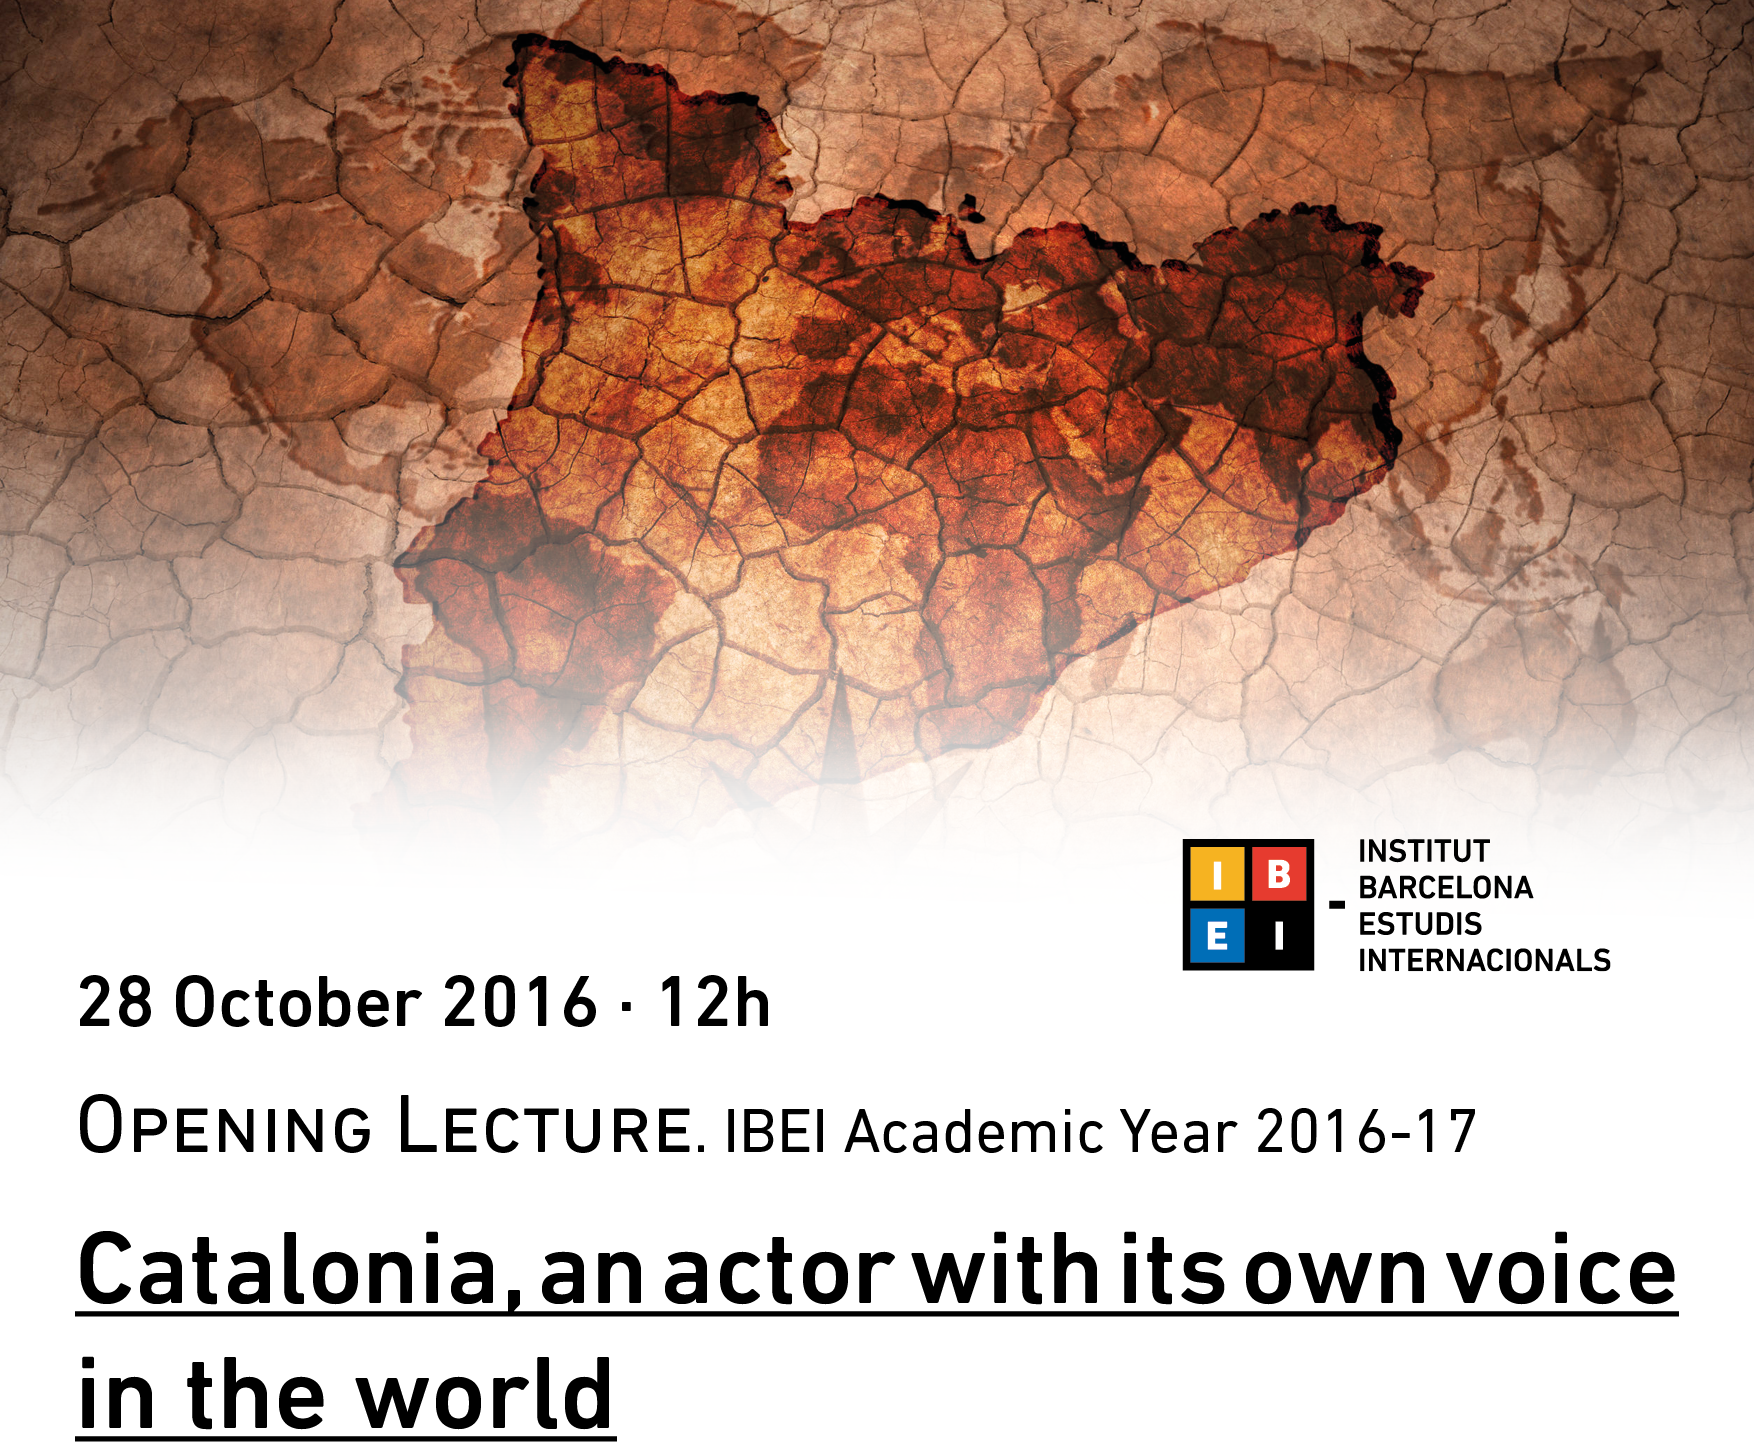 IBEI Opening Lecture 2016 by Raül Romeva